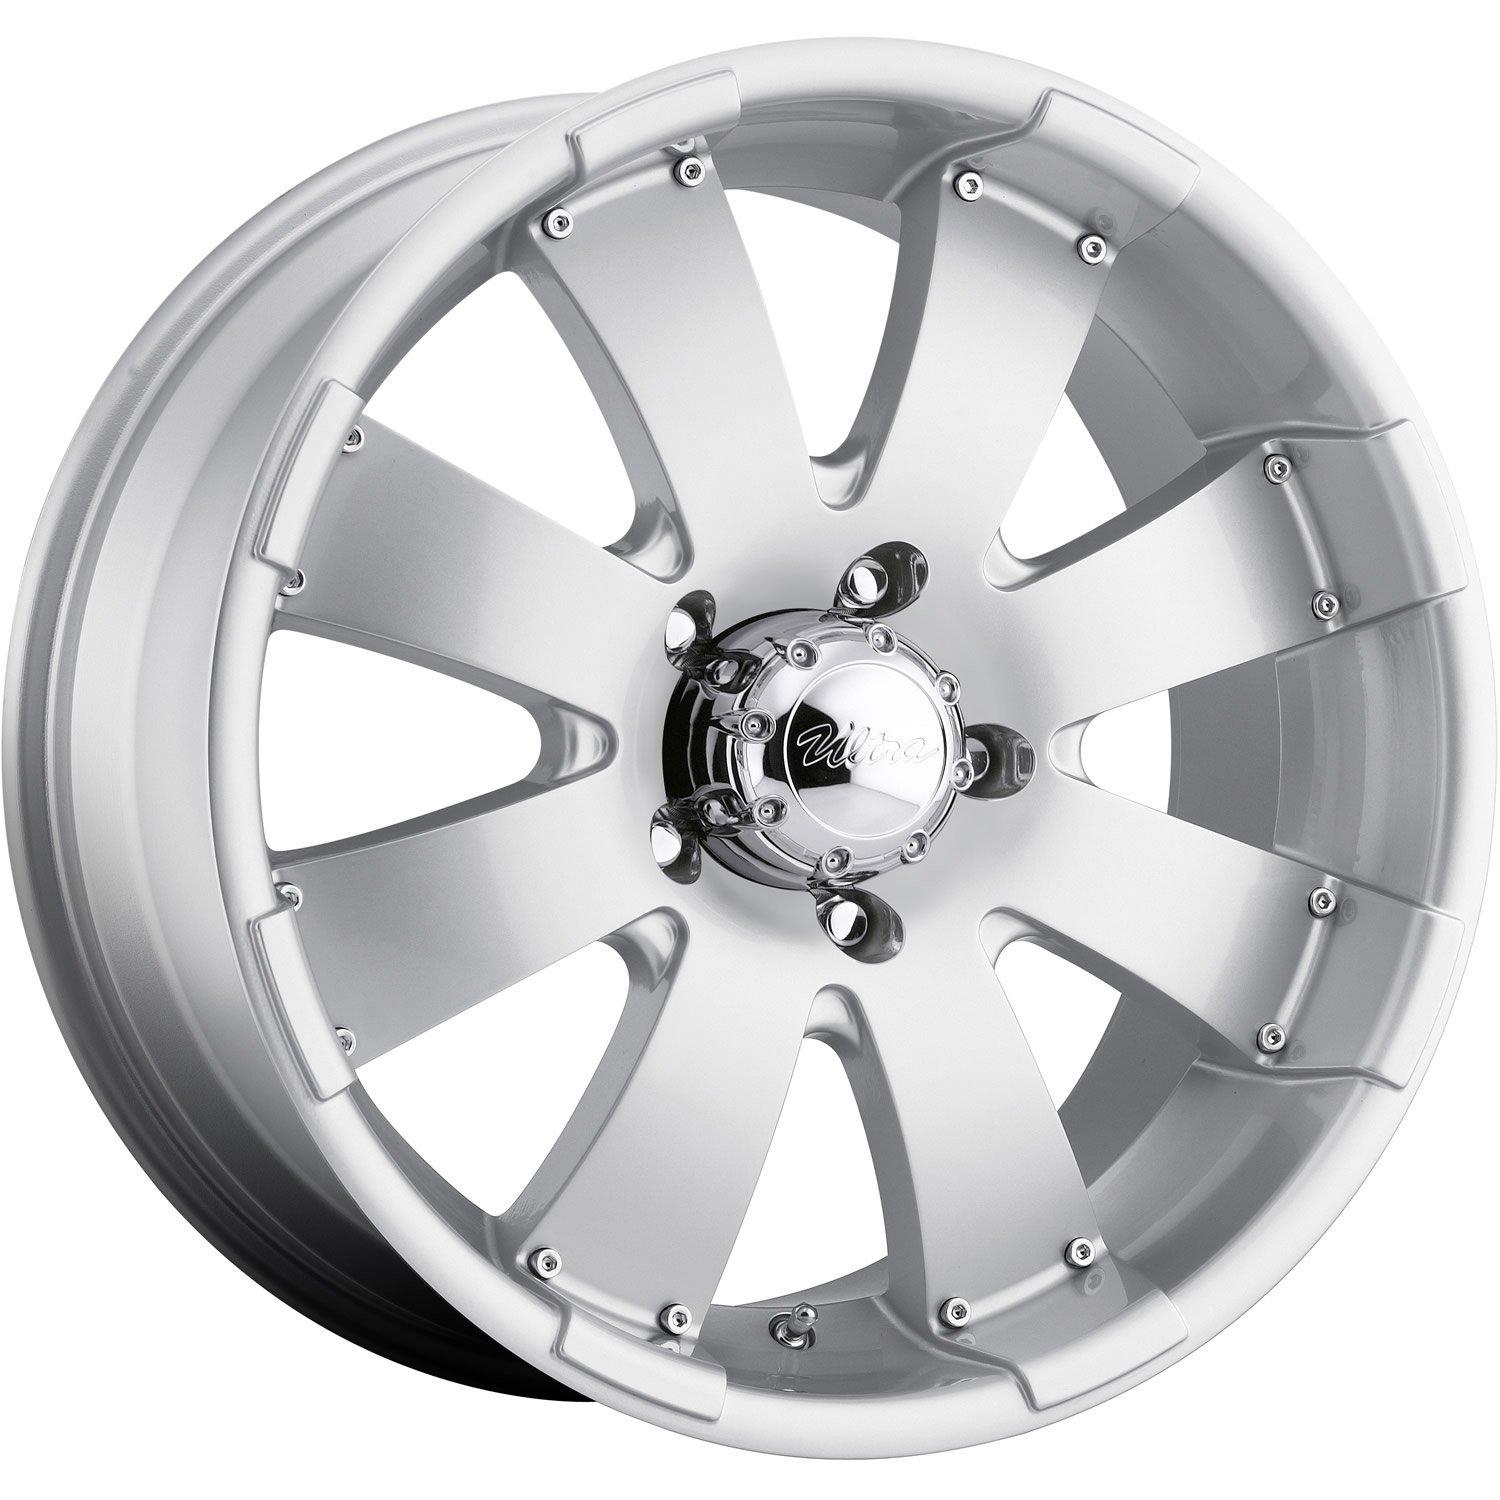 Ultra Mako 17 Silver Wheel / Rim 5x5.5 with a 10mm Offset and a 108 Hub Bore. Partnumber 243-7885S